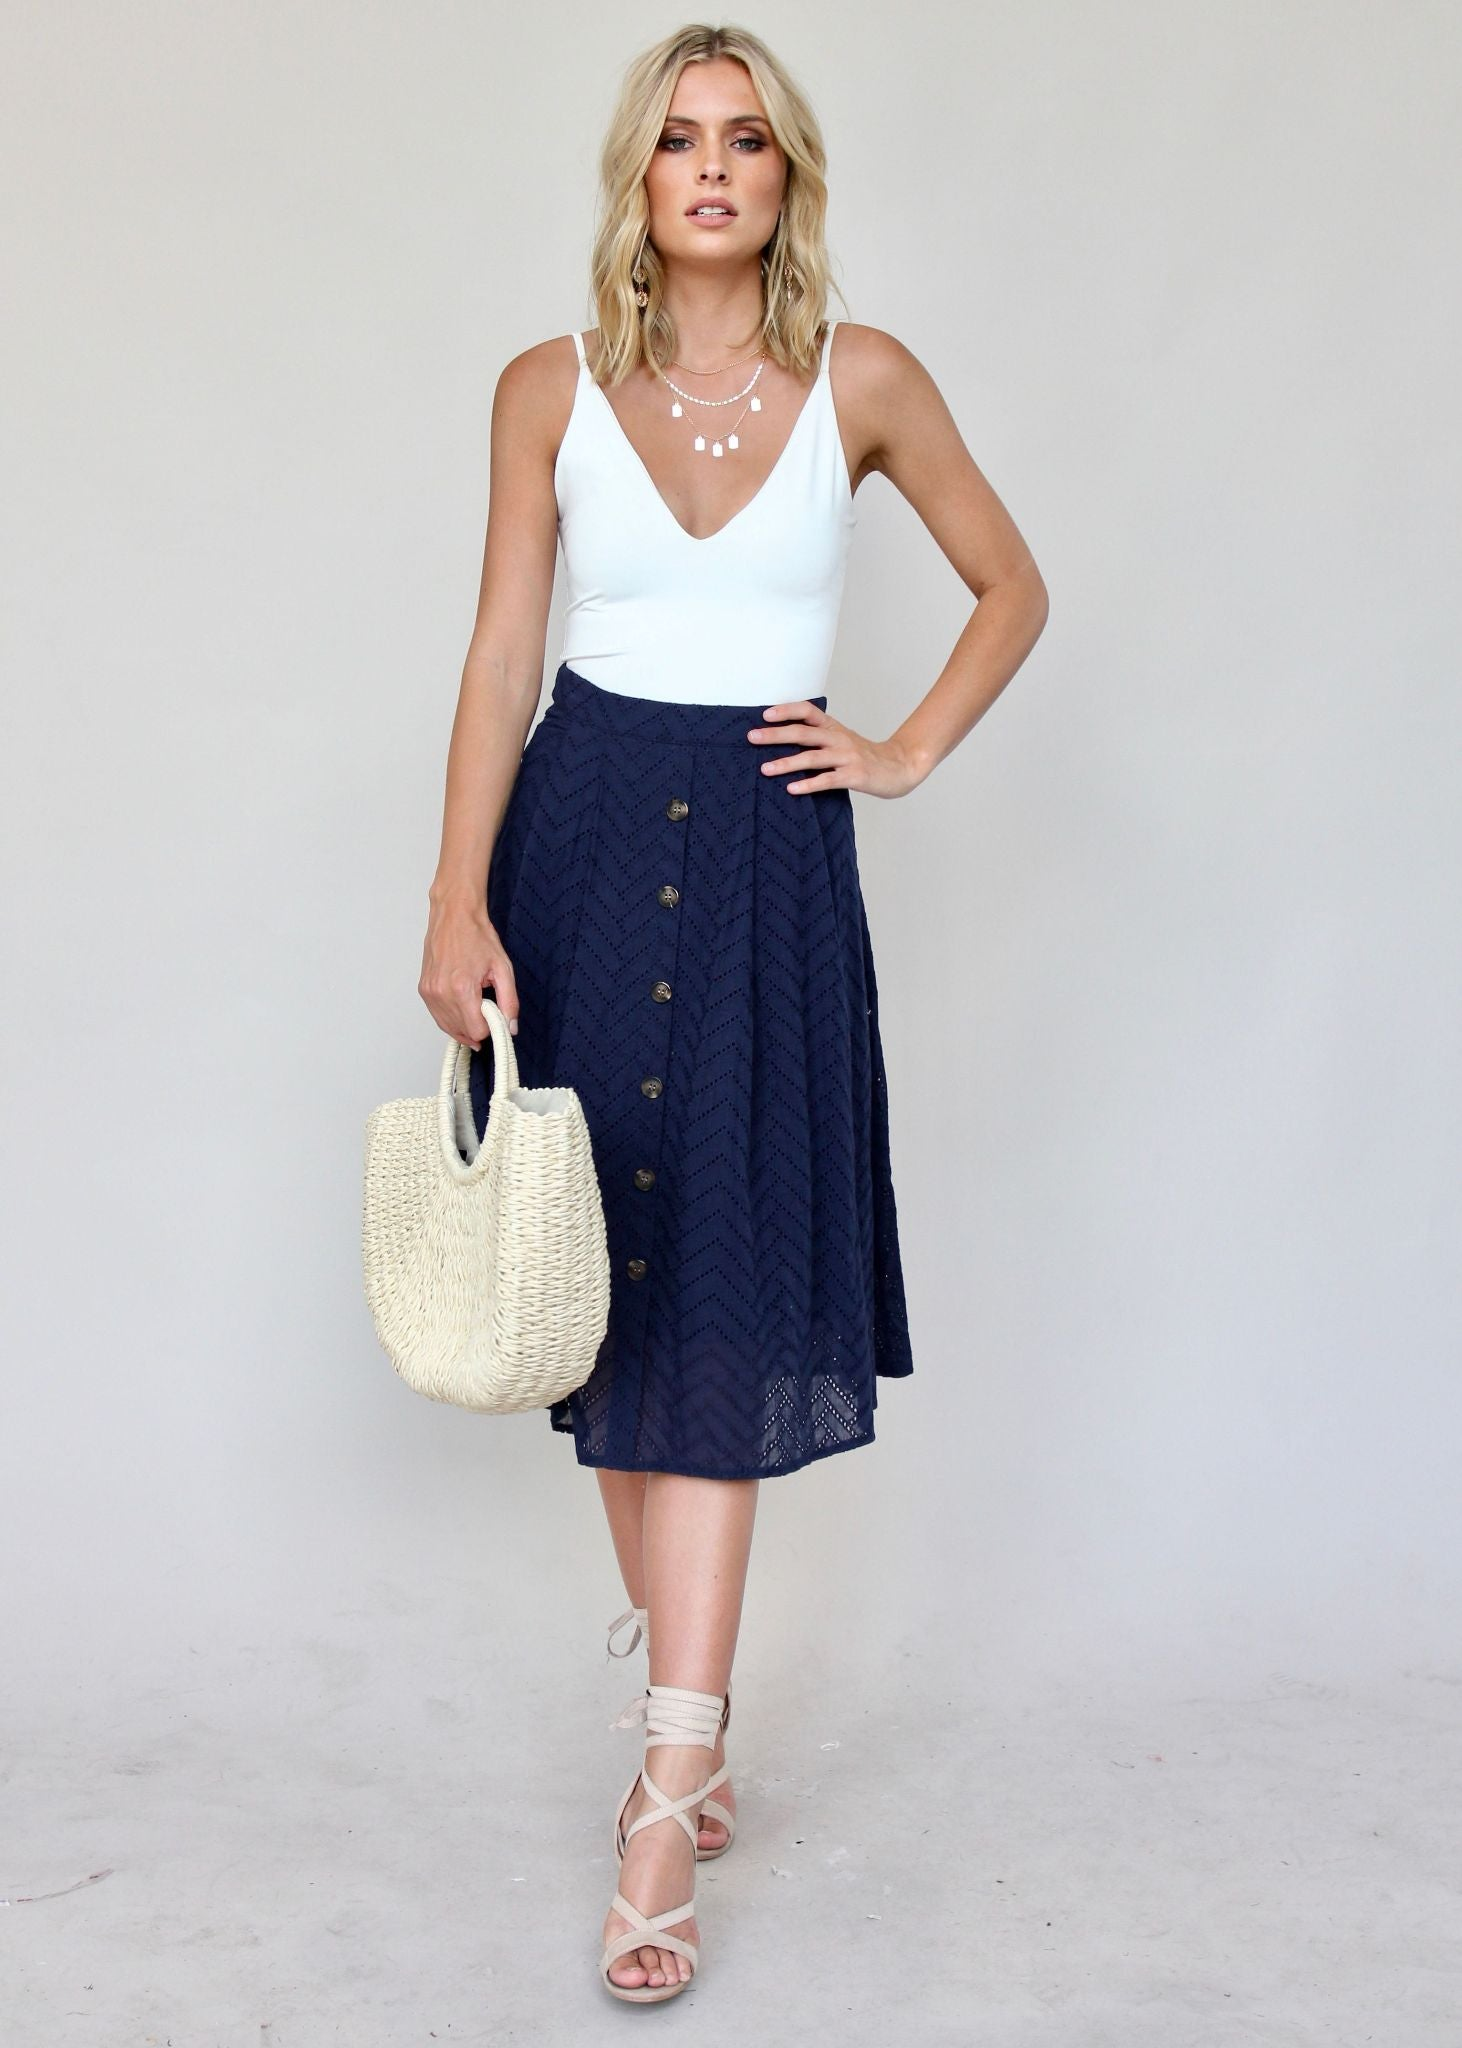 New Wave Midi Skirt - Navy